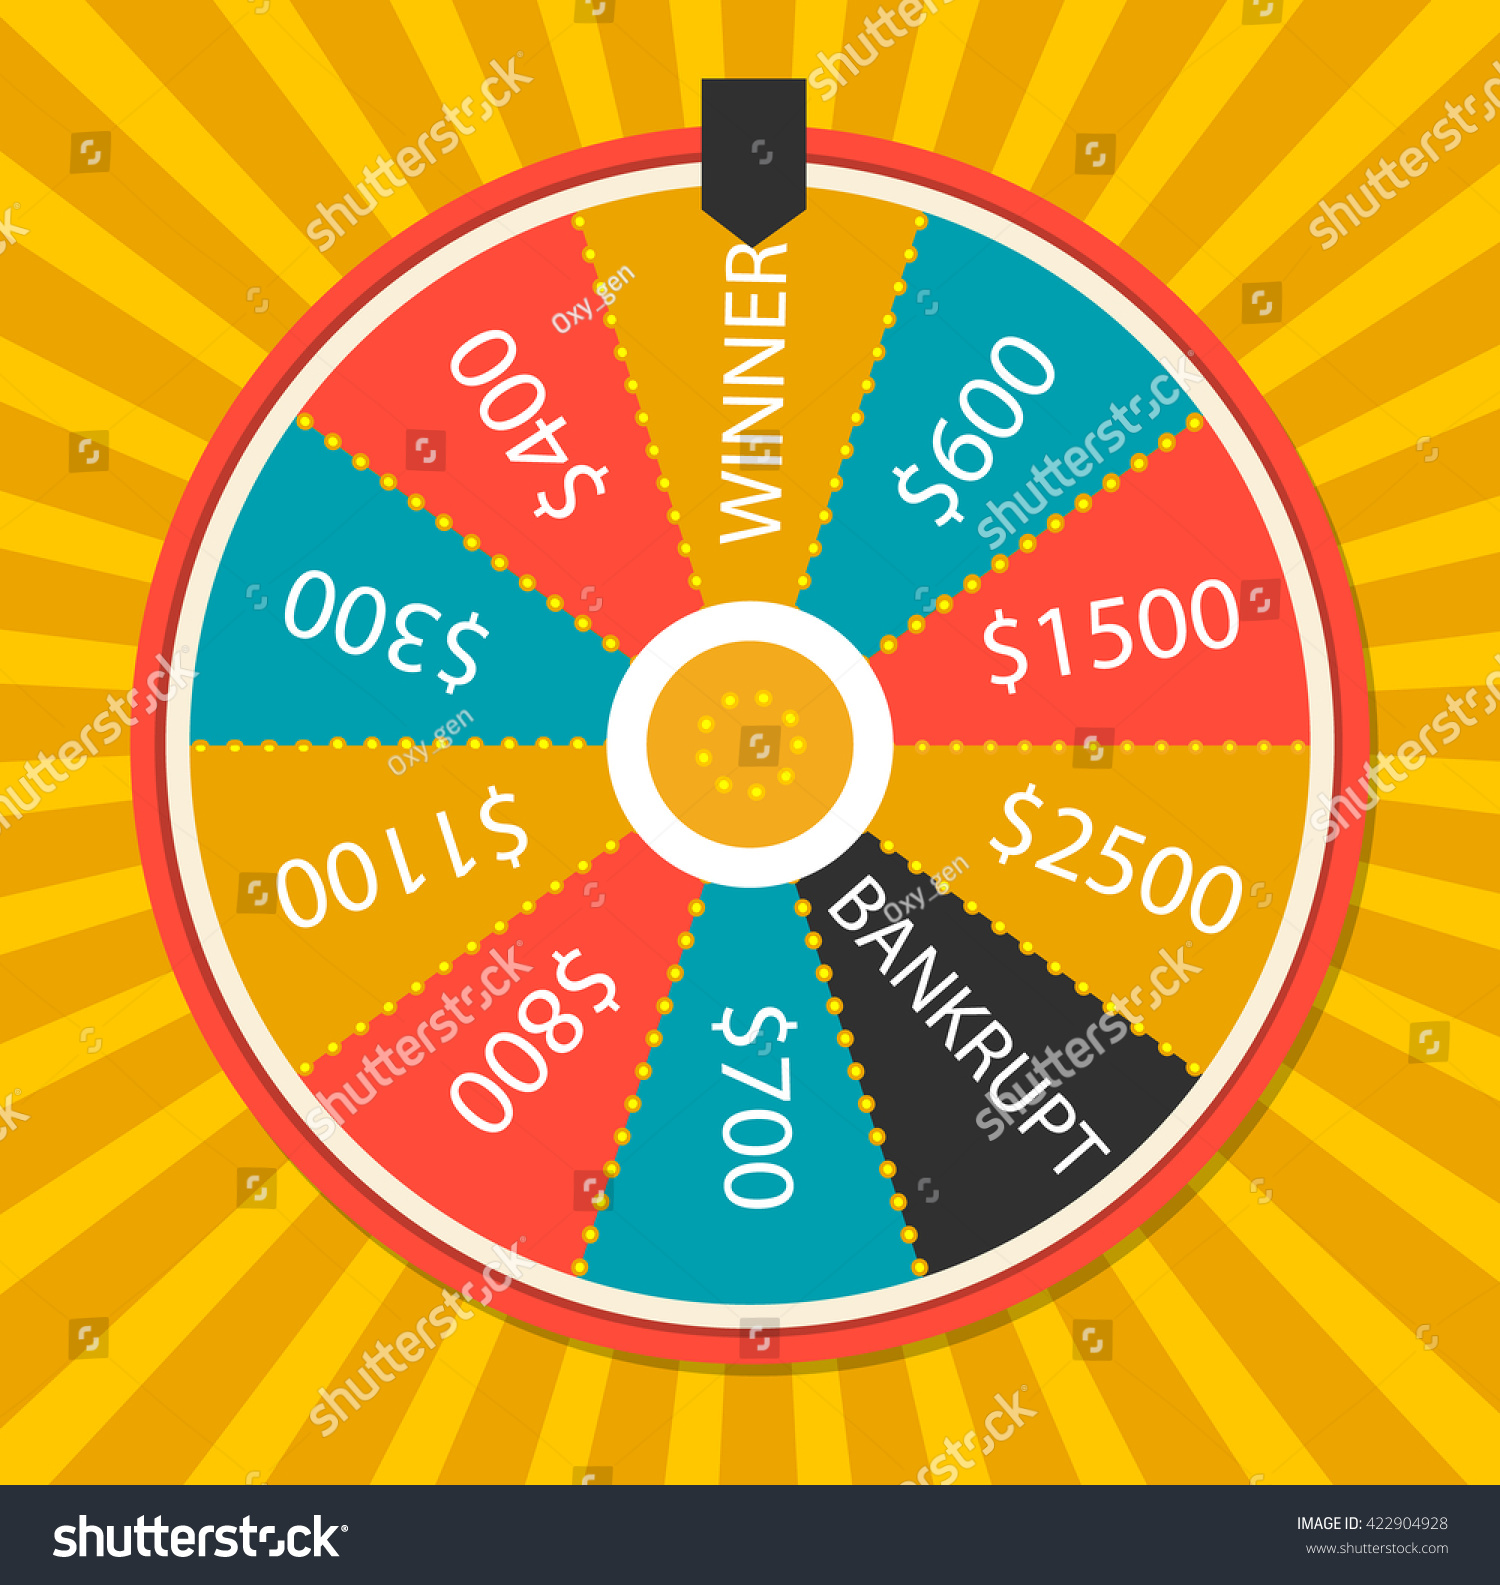 Online image photo editor shutterstock editor for Online wheel of fortune template